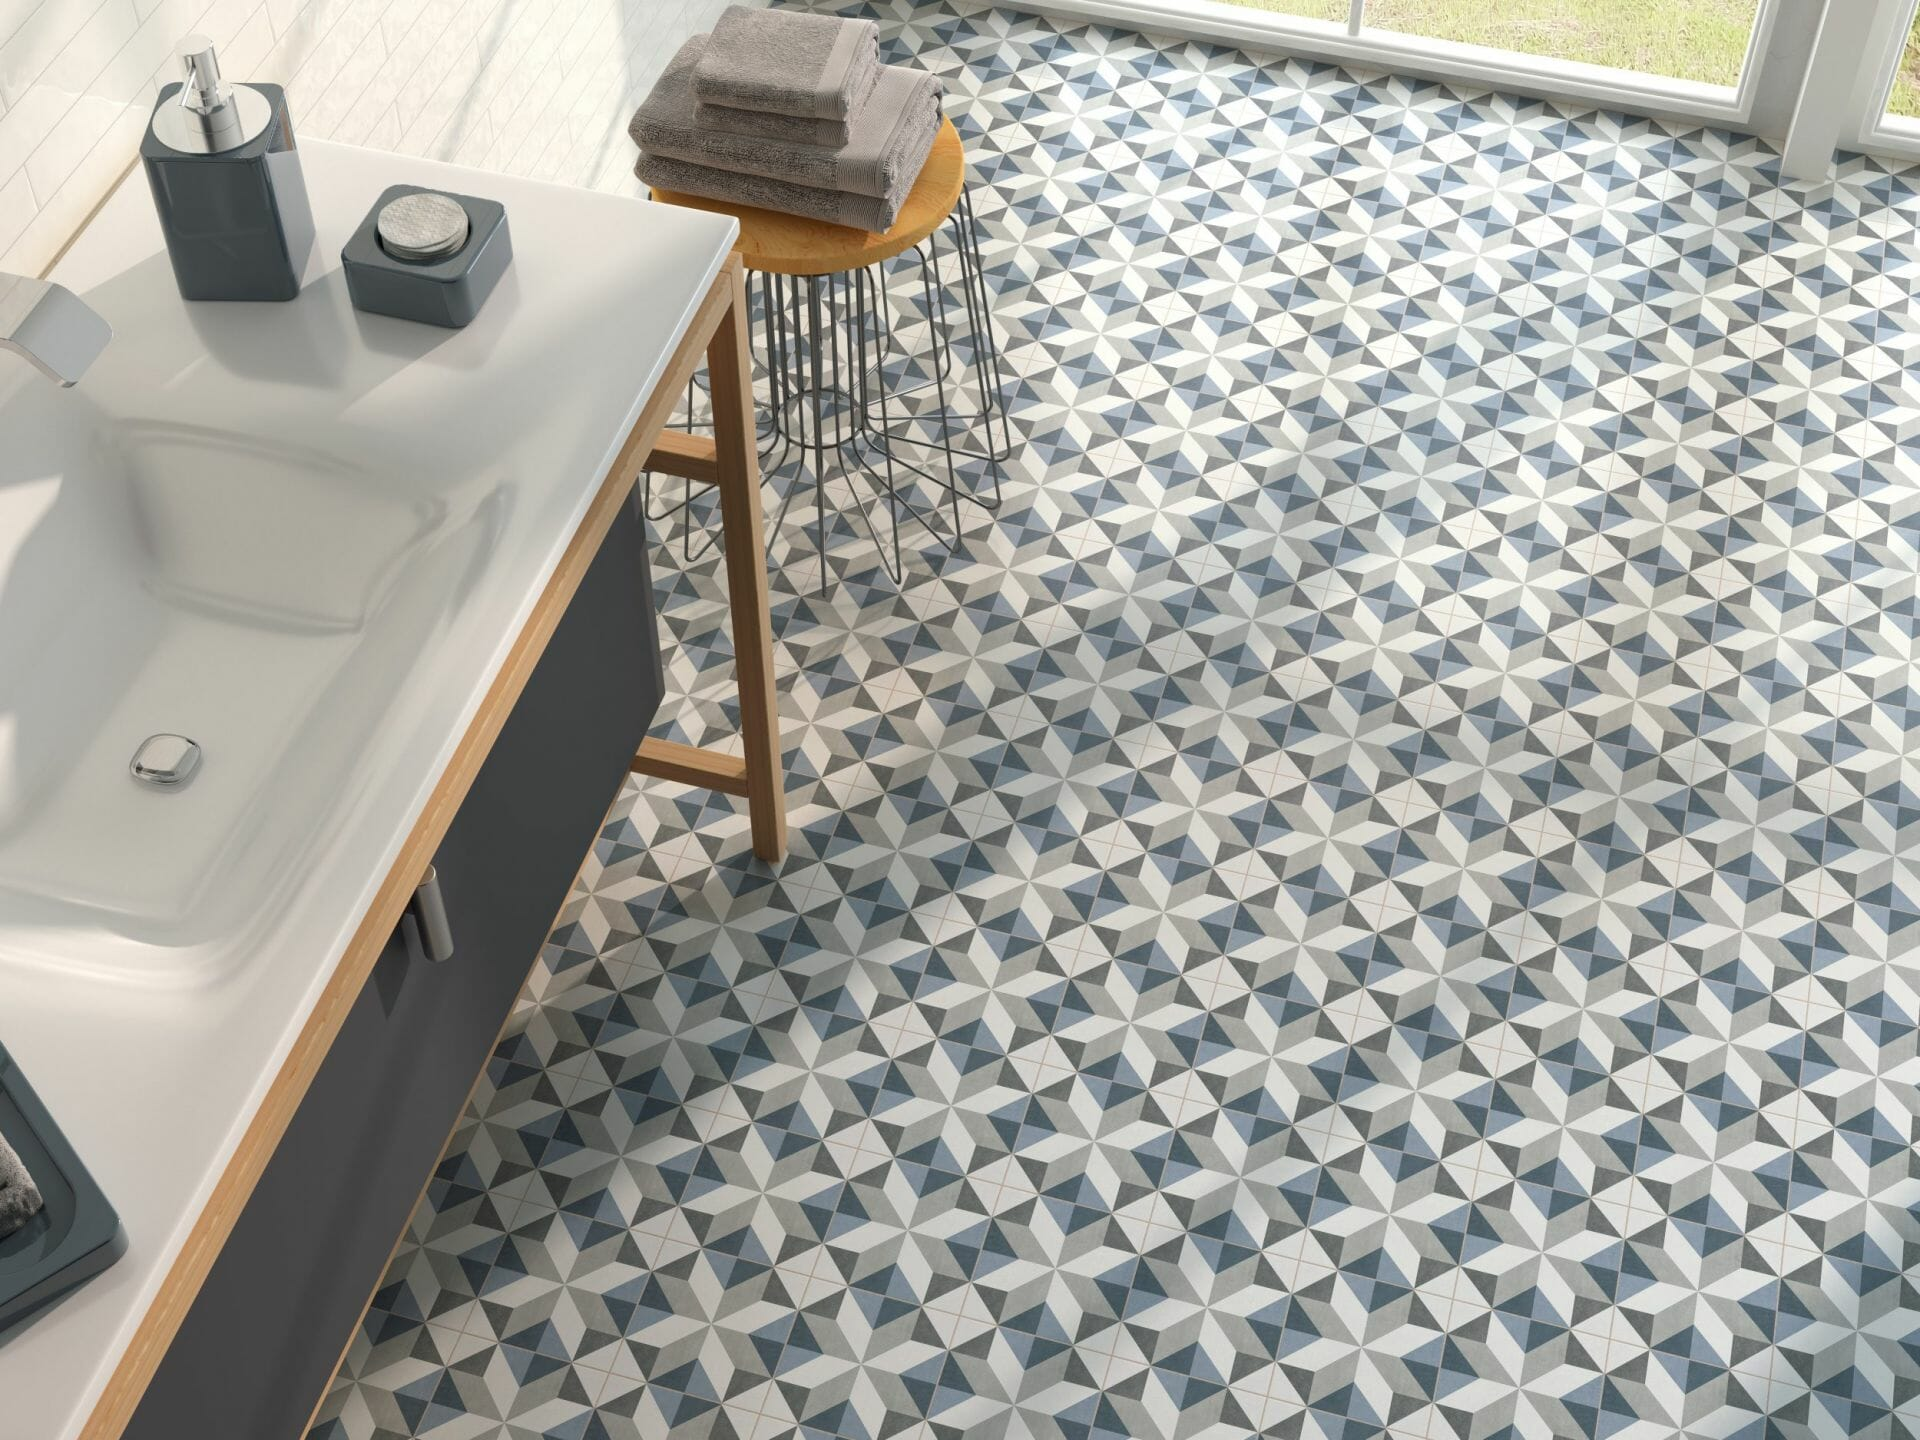 buy-latest-tiles-online-discounted-gemoetric